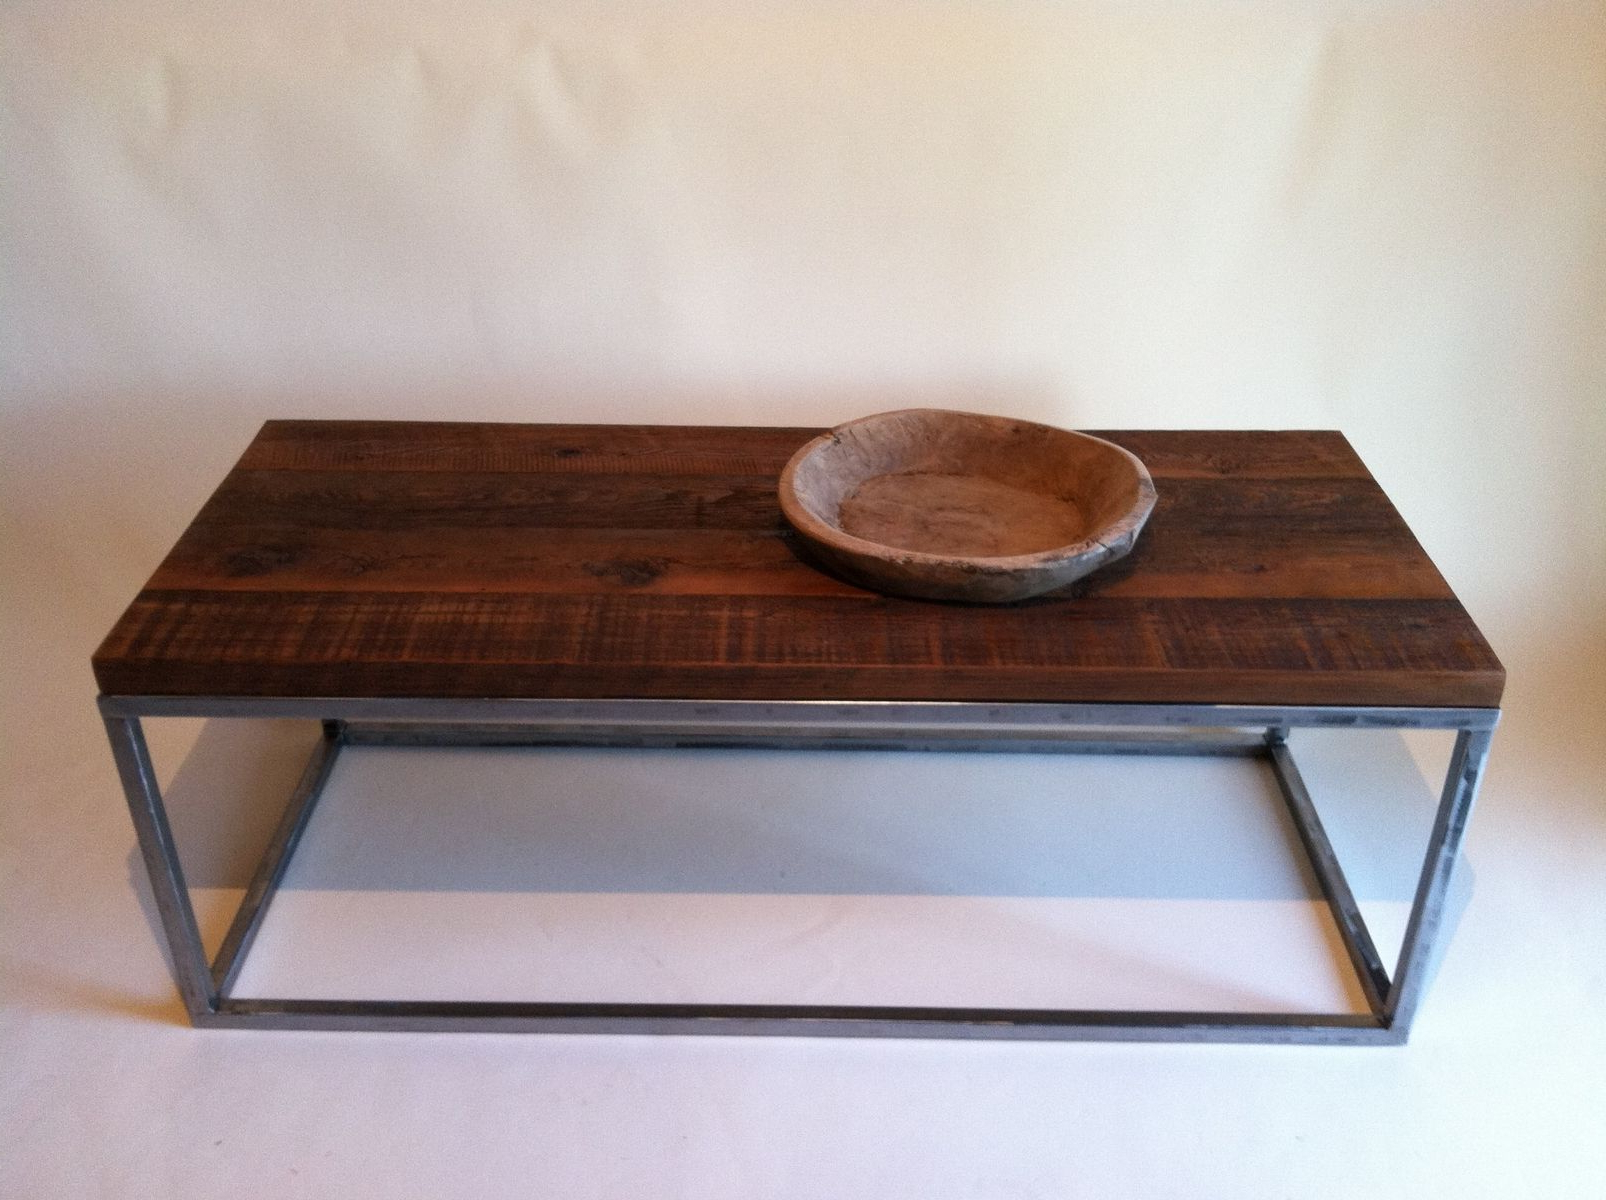 Iron Wood Coffee Tables With Wheels In Famous Handmade Reclaimed Wood Coffee Tables With Rectagular Polished Metal (View 18 of 20)